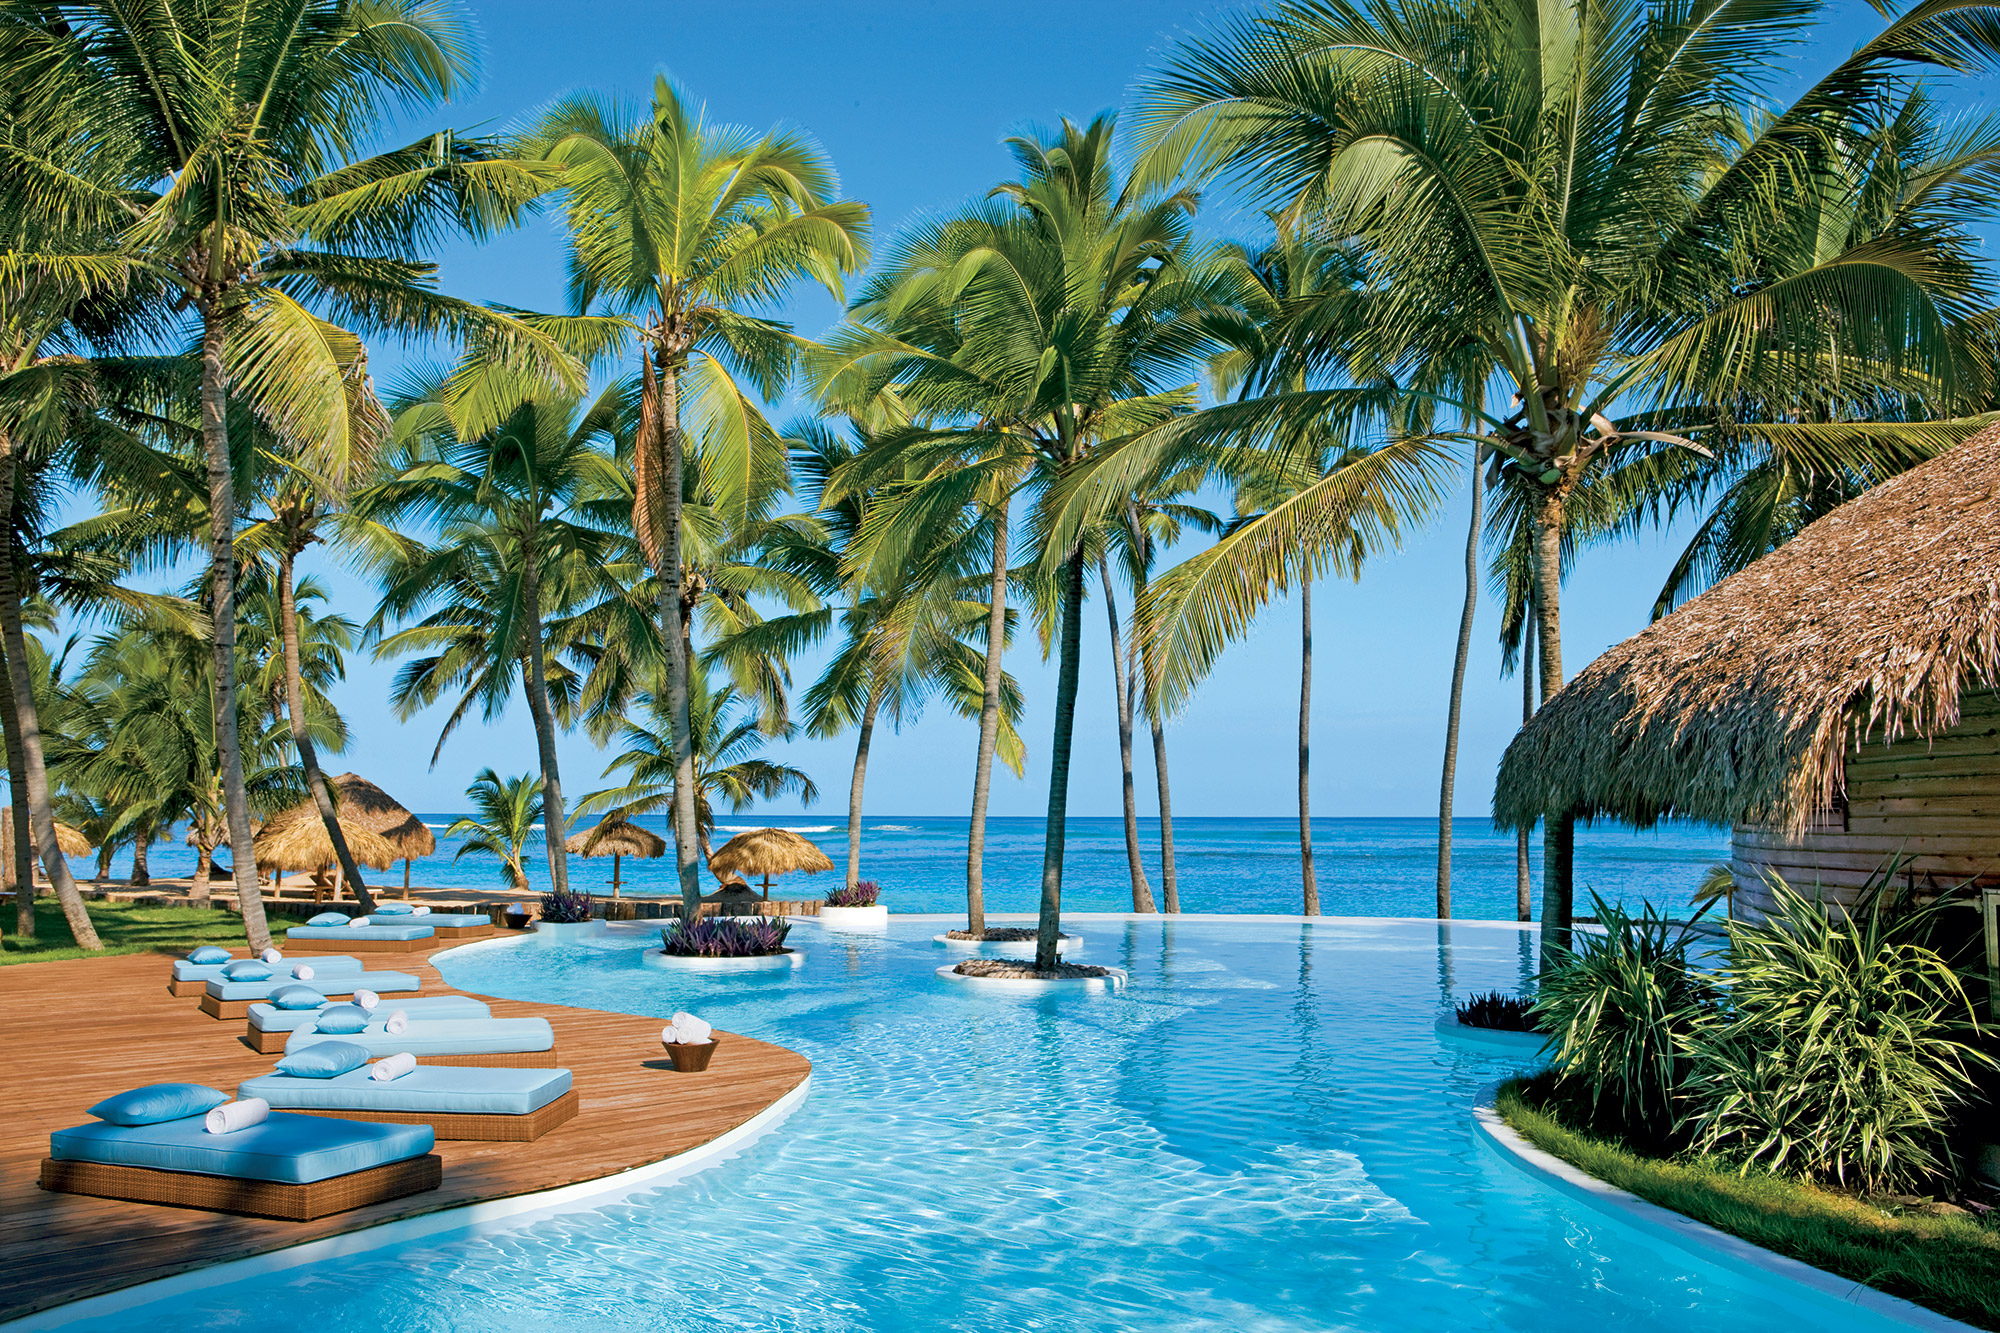 Infinity pool at zoetry agua punta cana the all inclusive